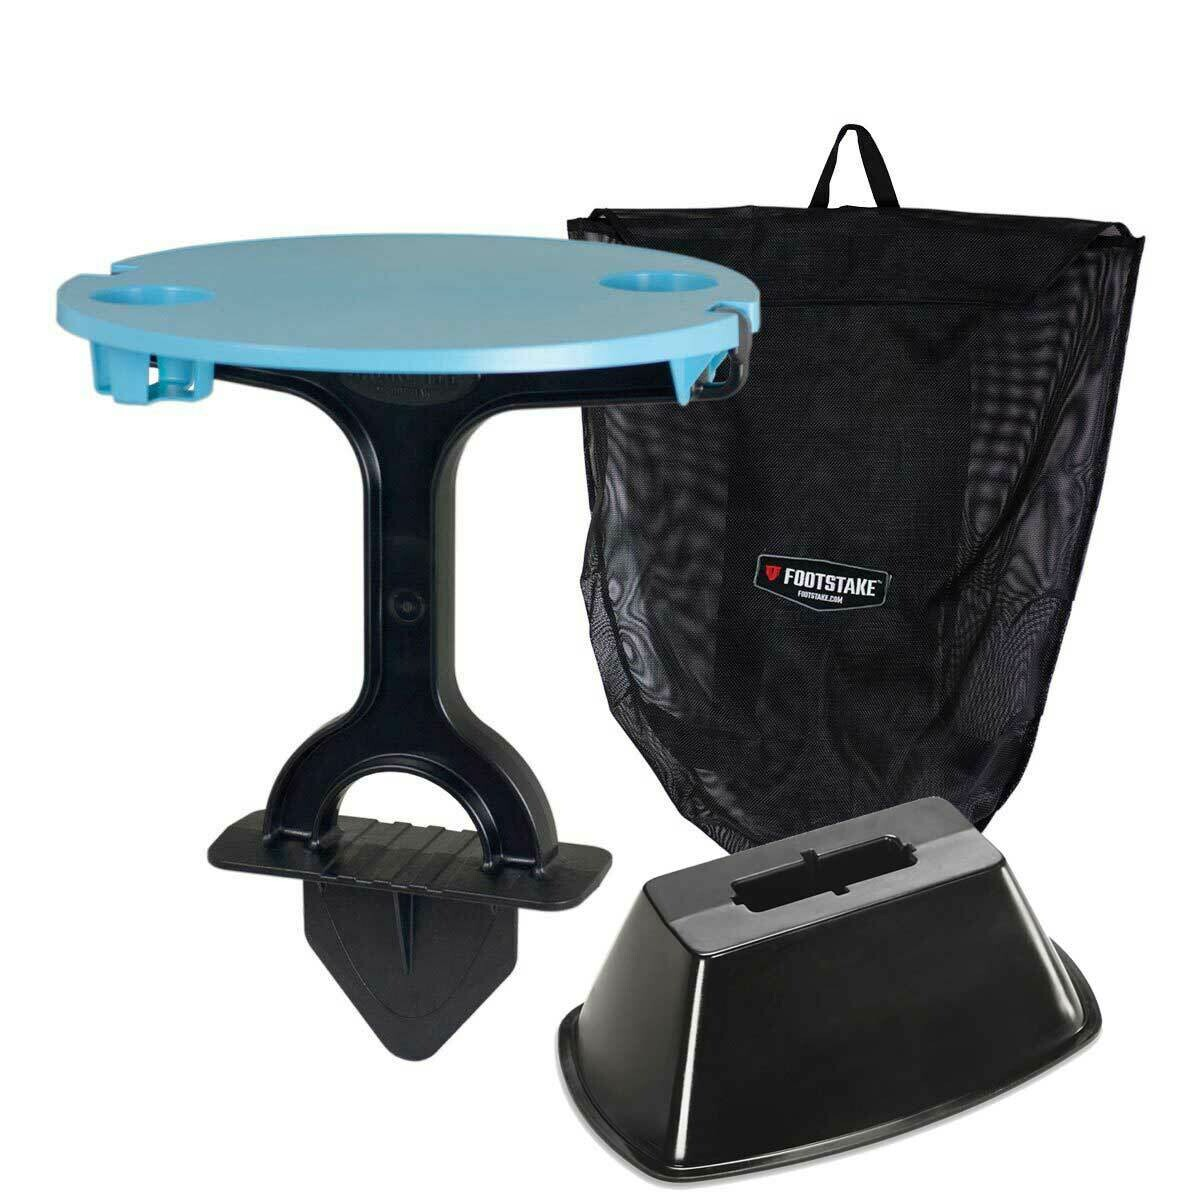 FootStake Blue Table & Base Combo